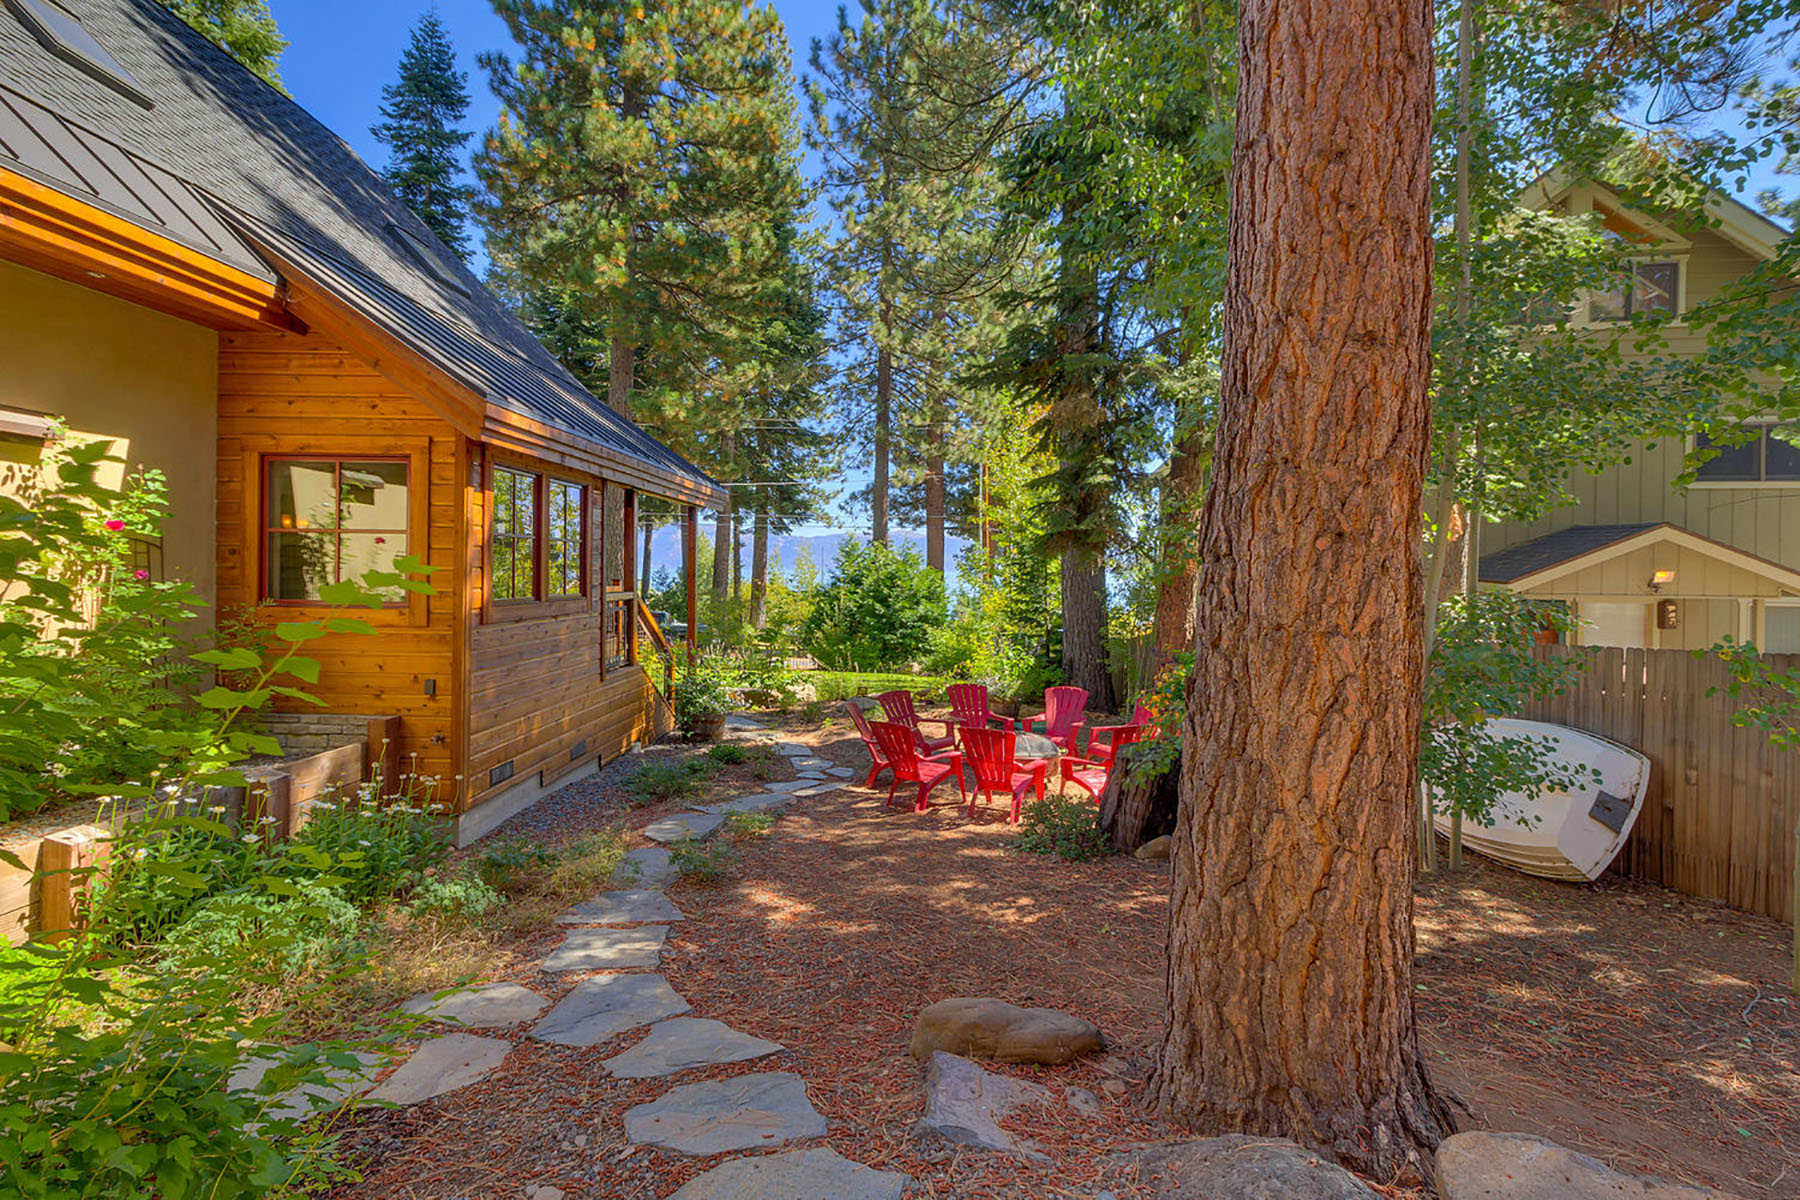 Additional photo for property listing at 5019 California Street, Carnelian Bay, Ca 96140 5019 California Street Carnelian Bay, California 96140 United States